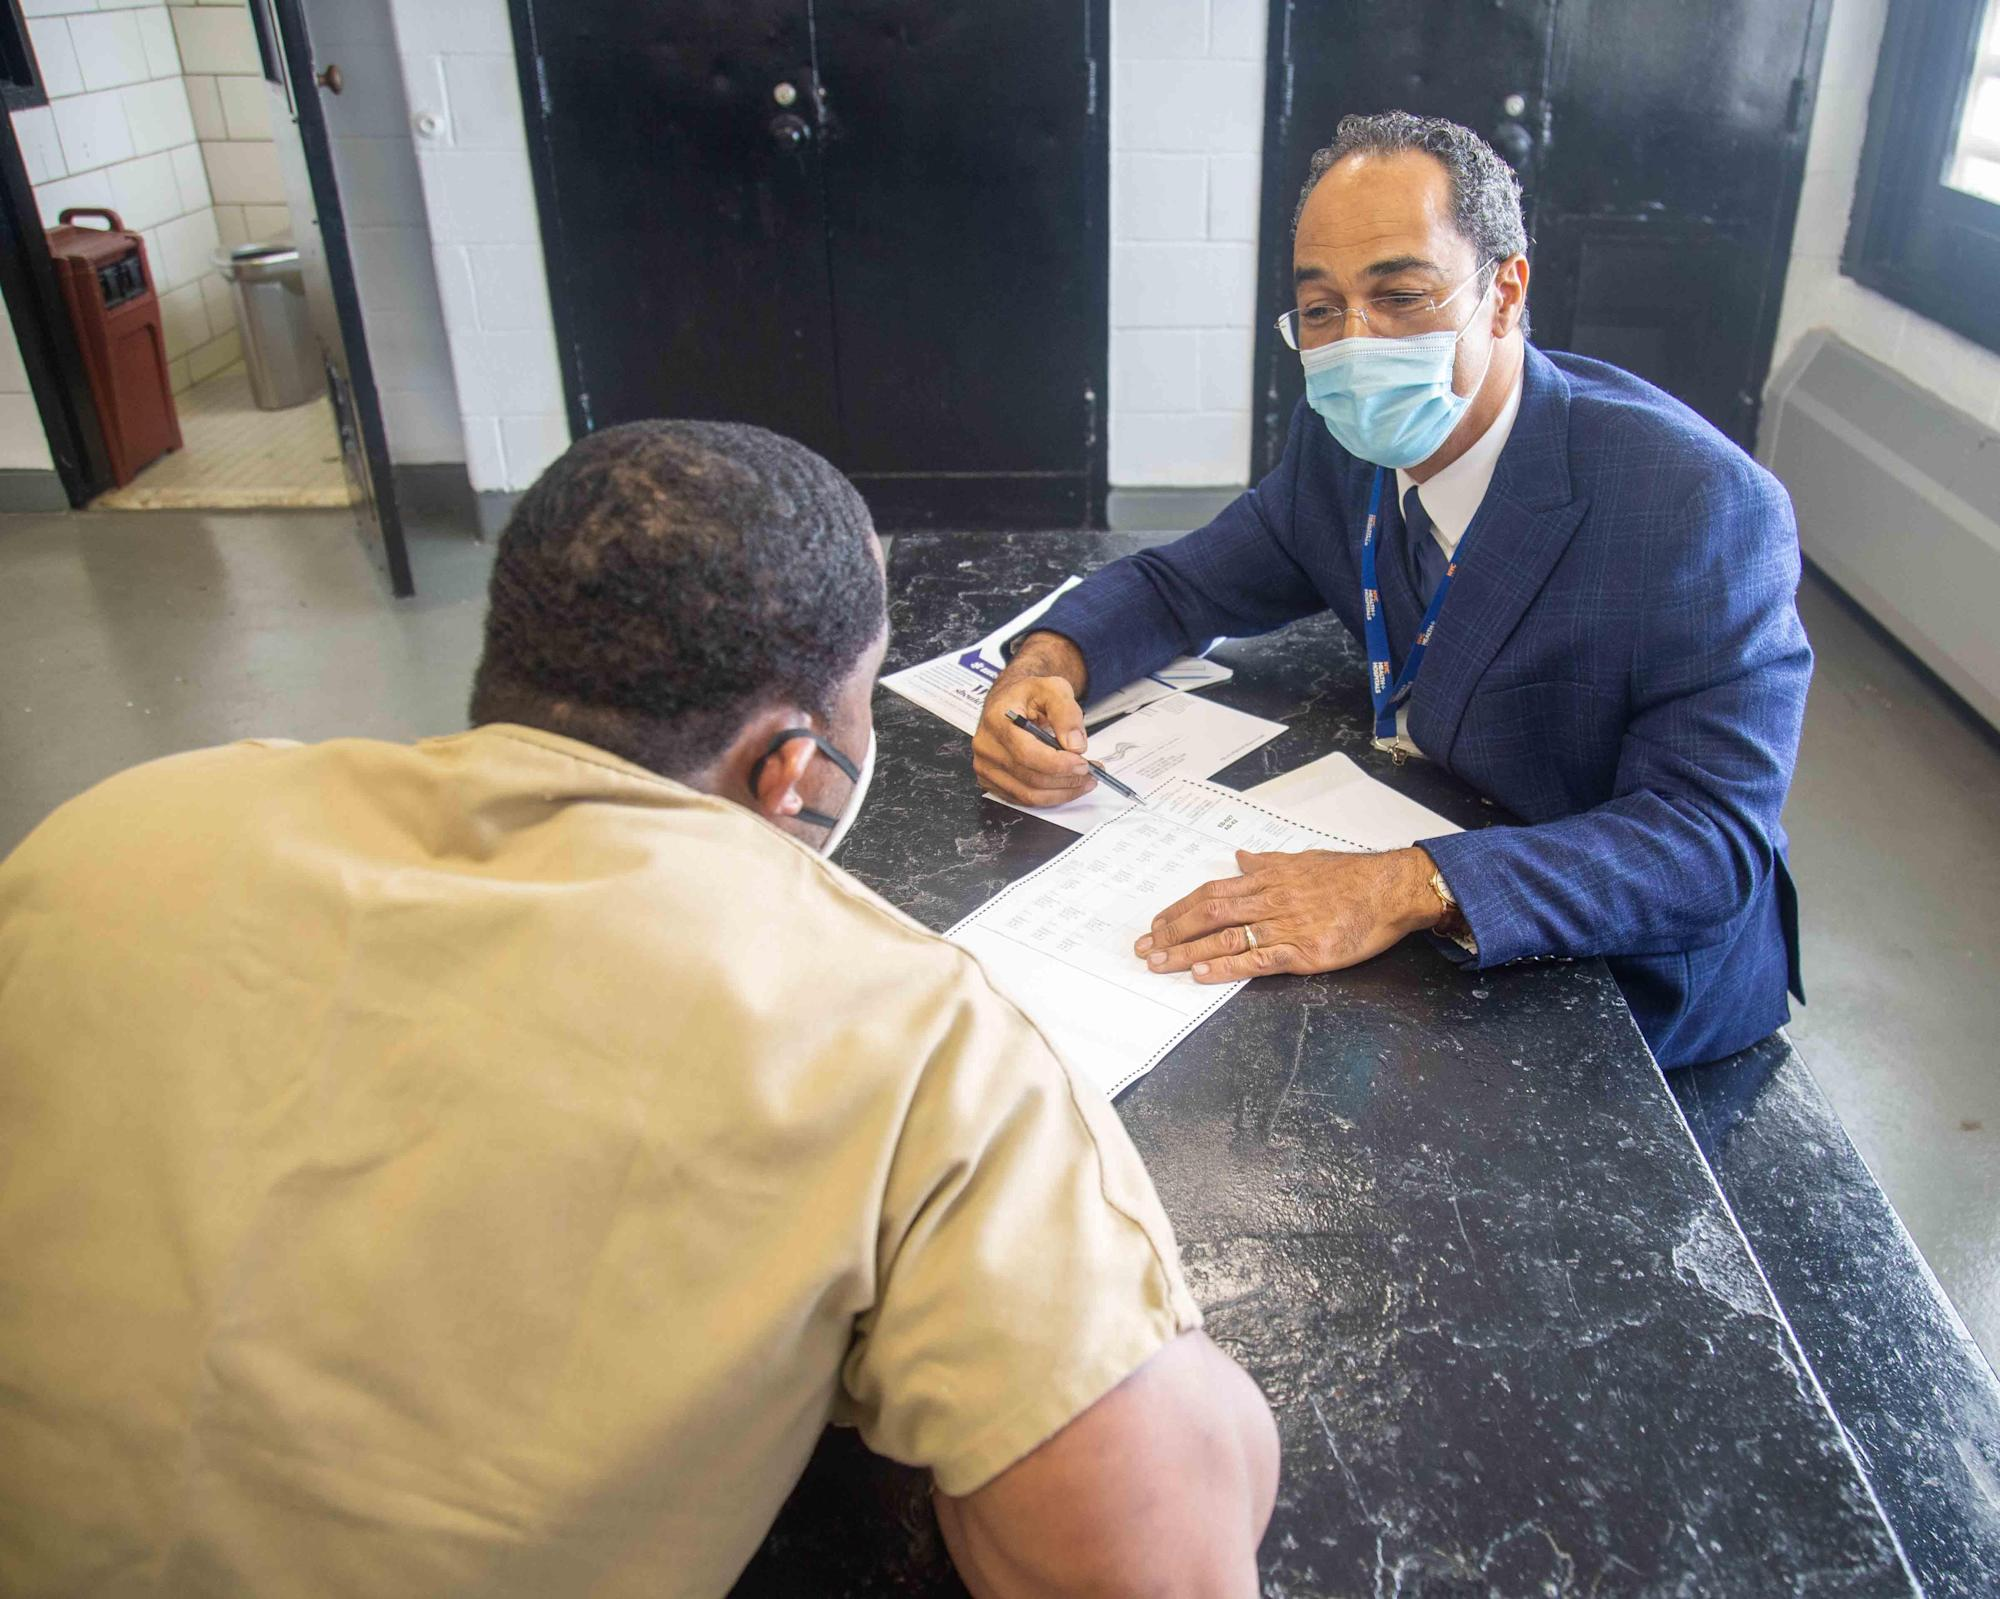 Many people in jail are eligible to vote. But casting a ballot behind bars isn't easy